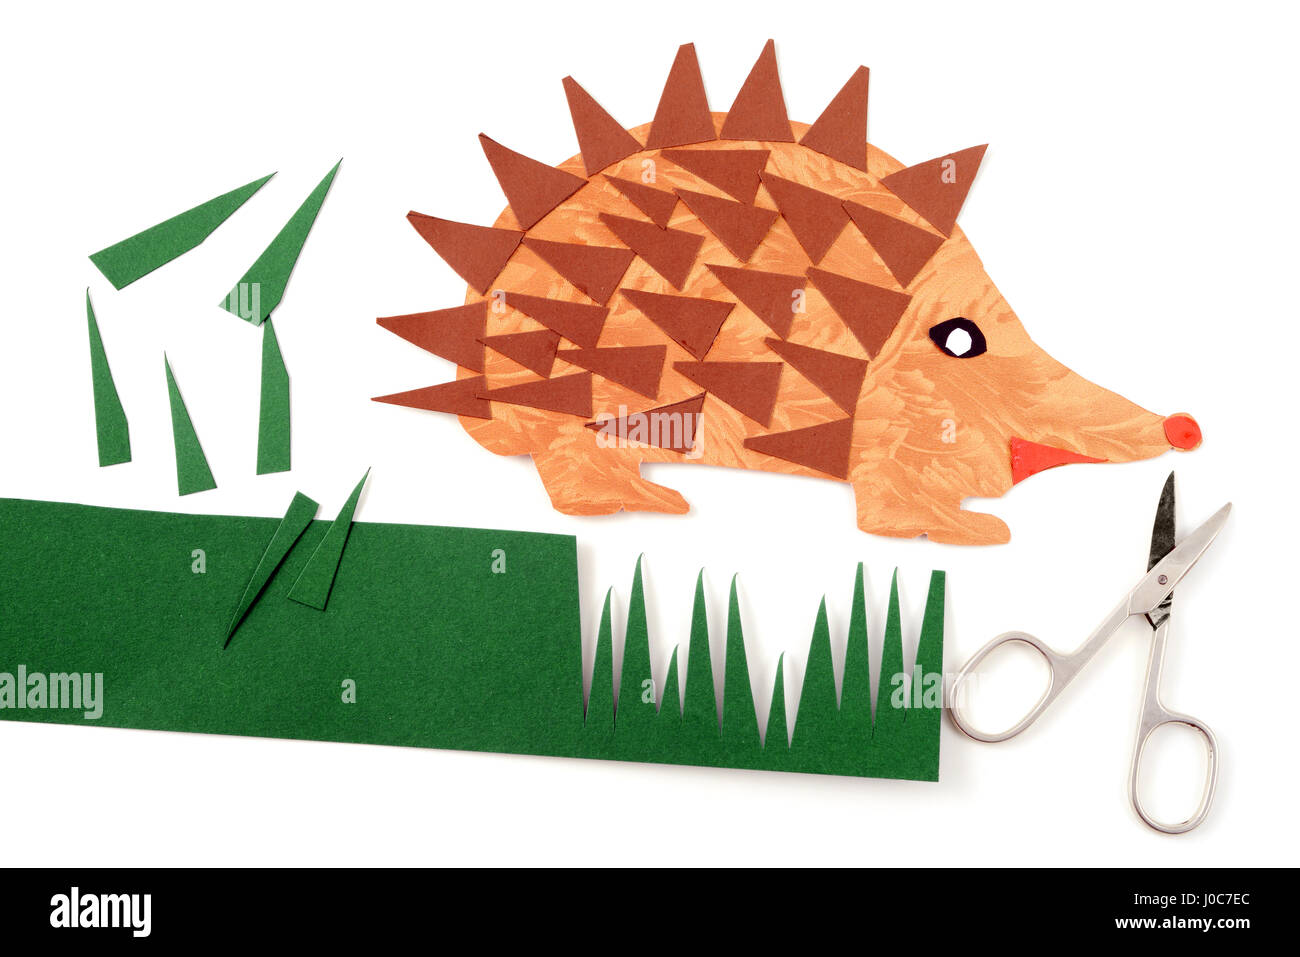 tinker a hedgehog with paper and scissors. - Stock Image